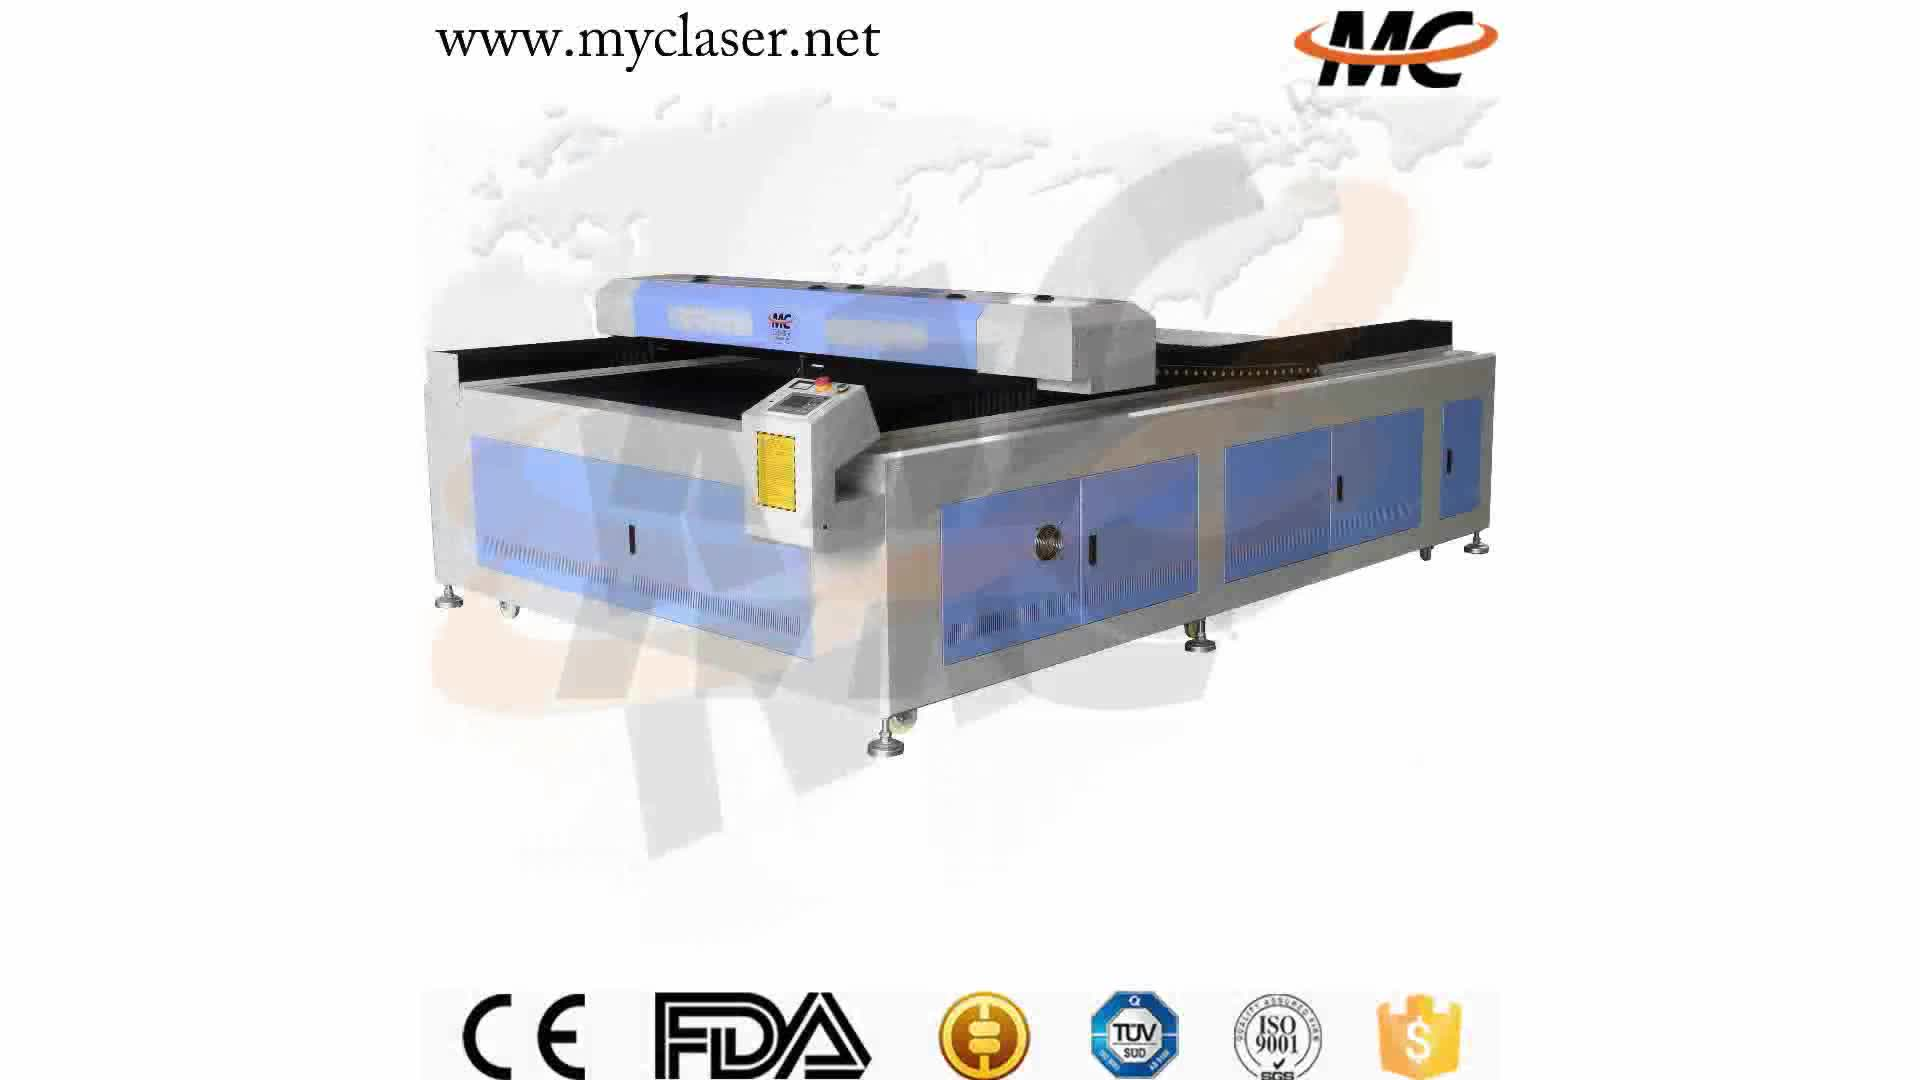 Large format 1325 laser cutting engraving machine co2 100w 130w for wood acrylic sheet 4x8